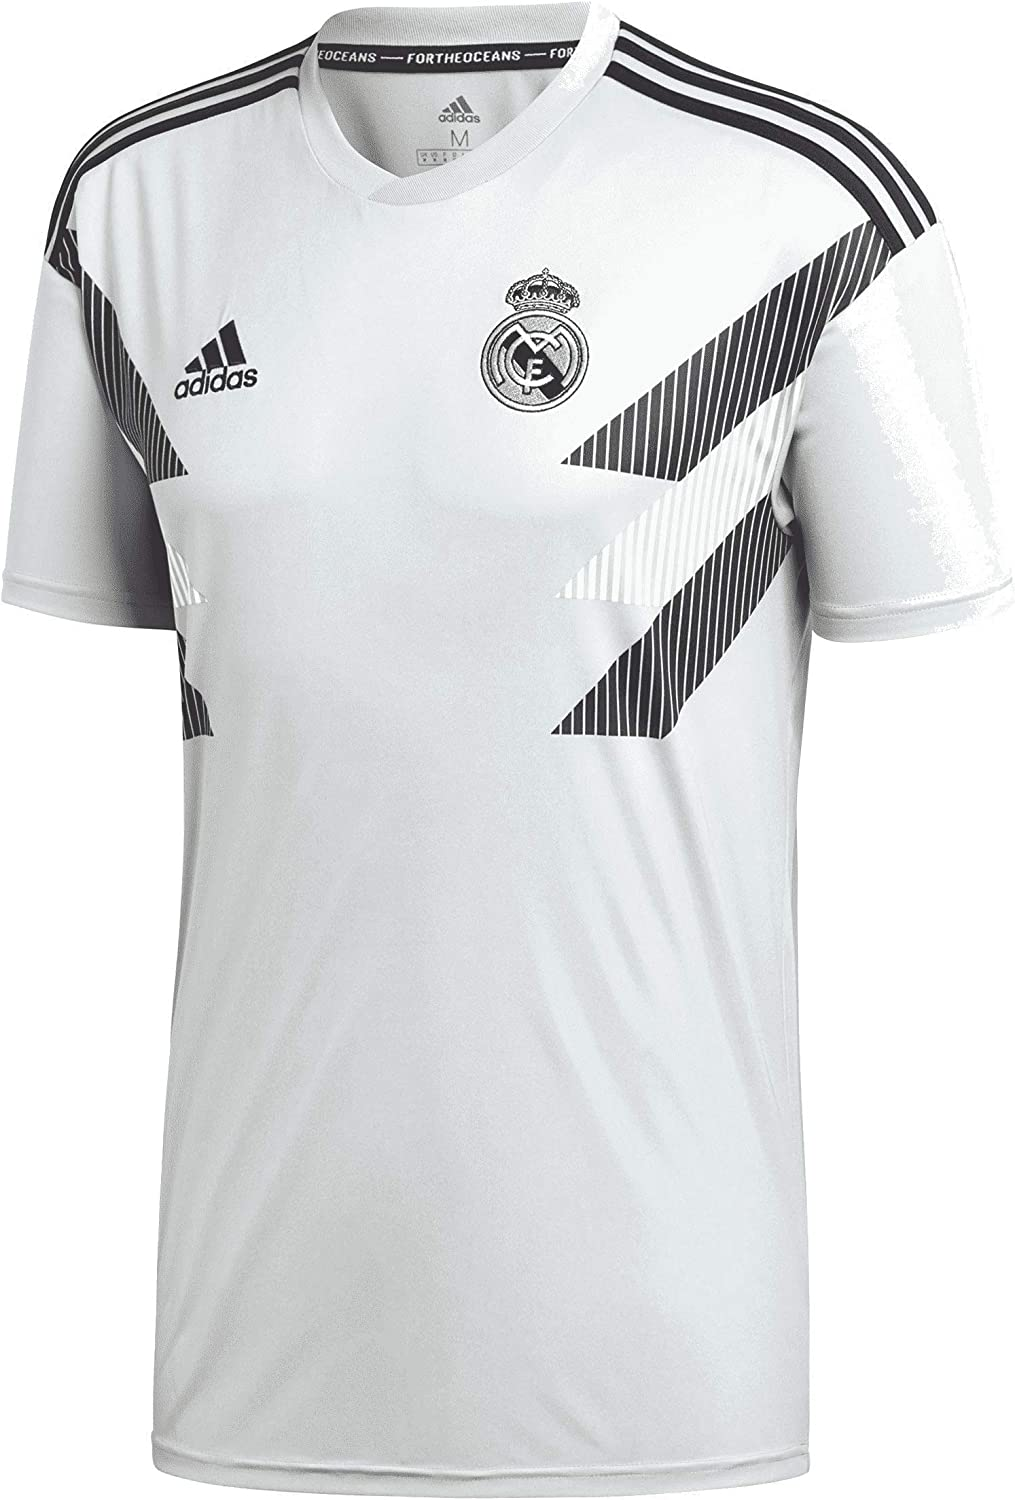 adidas Men's Real Madrid Home Pre-Match Training Soccer Jersey